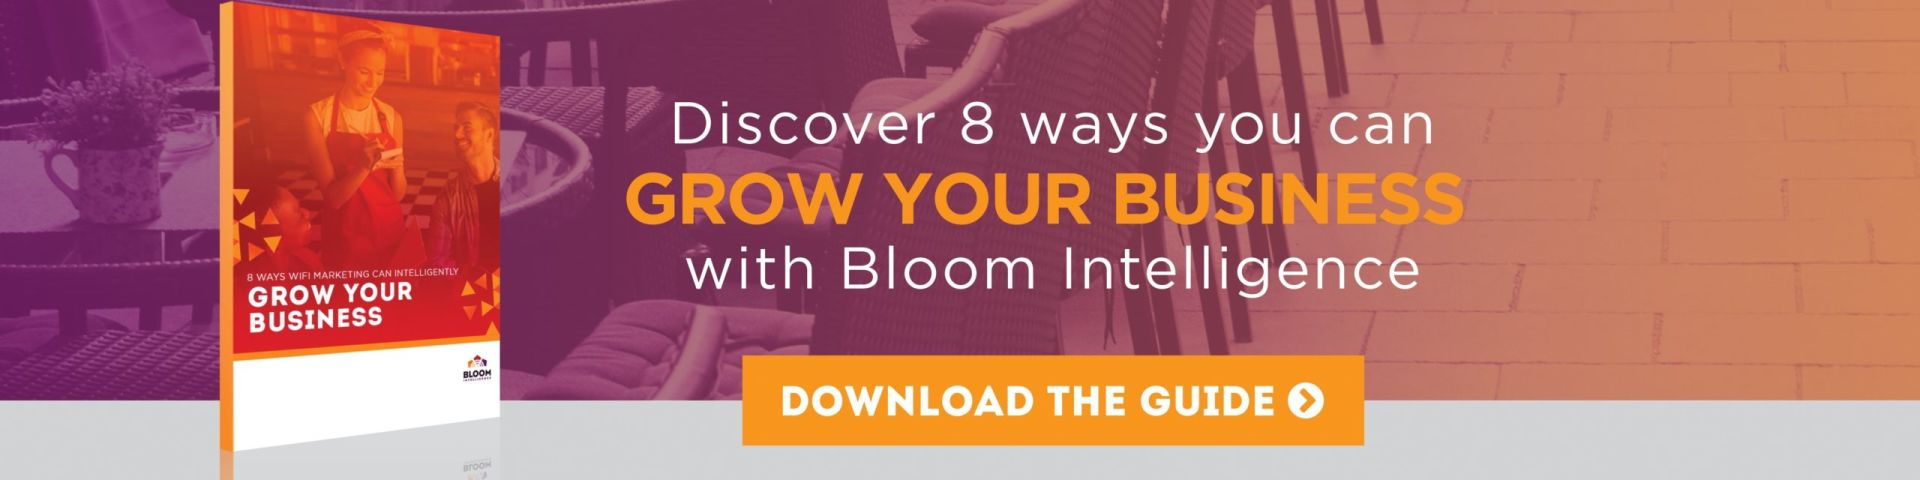 Improve Restaurant Operations with Bloom Intelligence